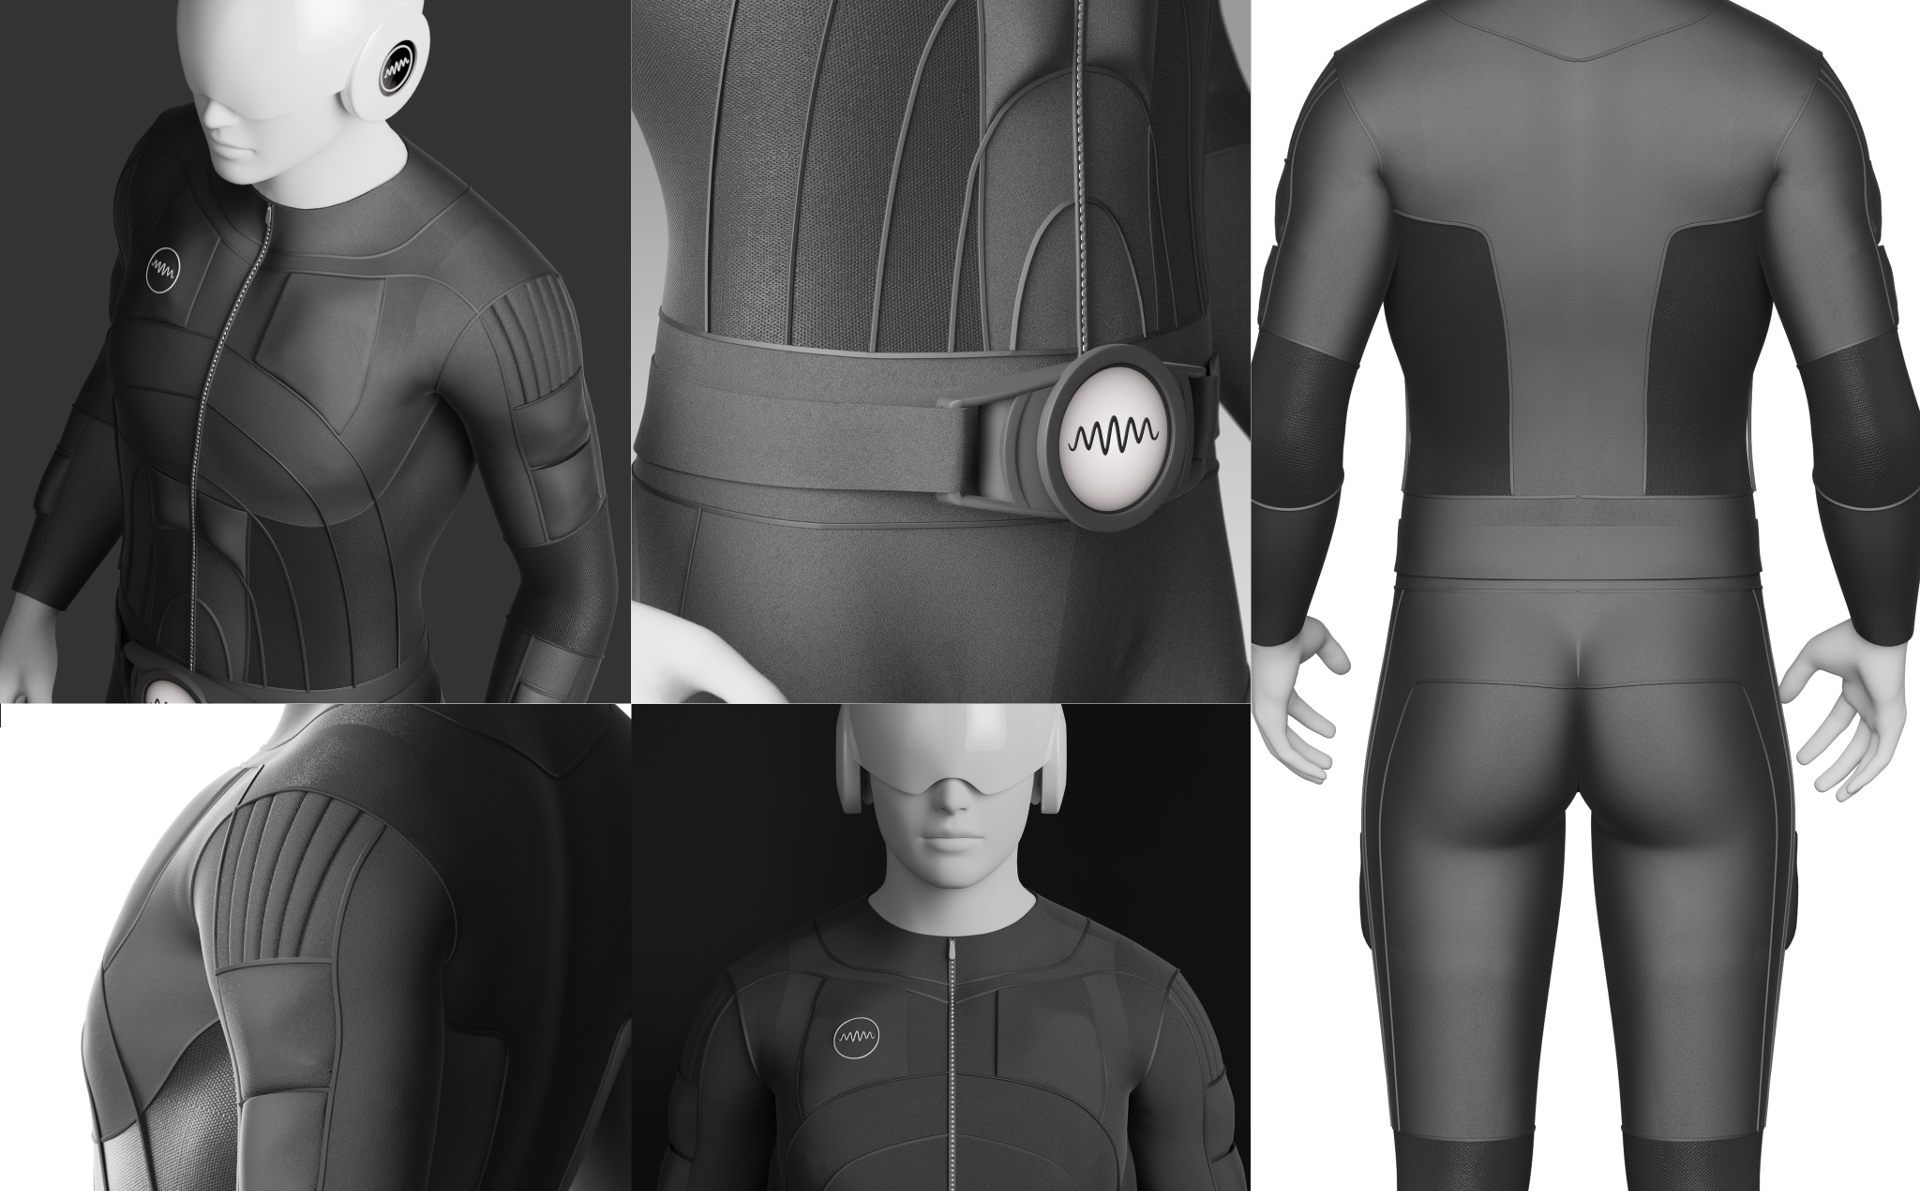 The Tesla Suit is a full-body haptic suit that allows users to feel what they play. It's a smart textile gaming suit that lets people interact with virtual environments in ways that were not possible before.